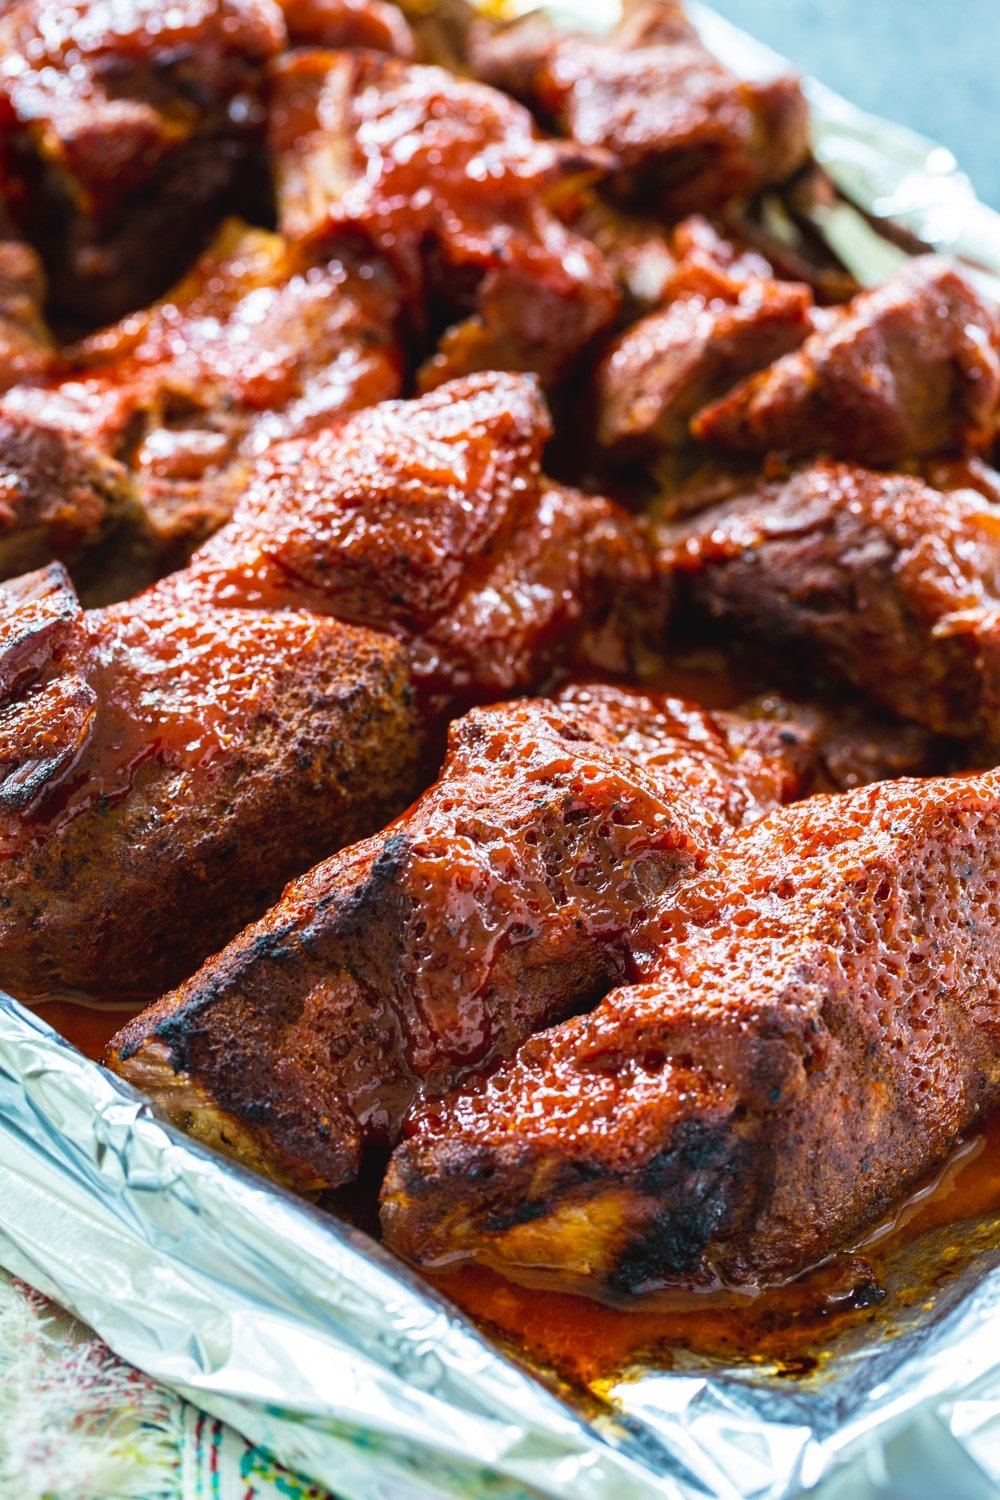 Country Style Ribs on baking sheet.